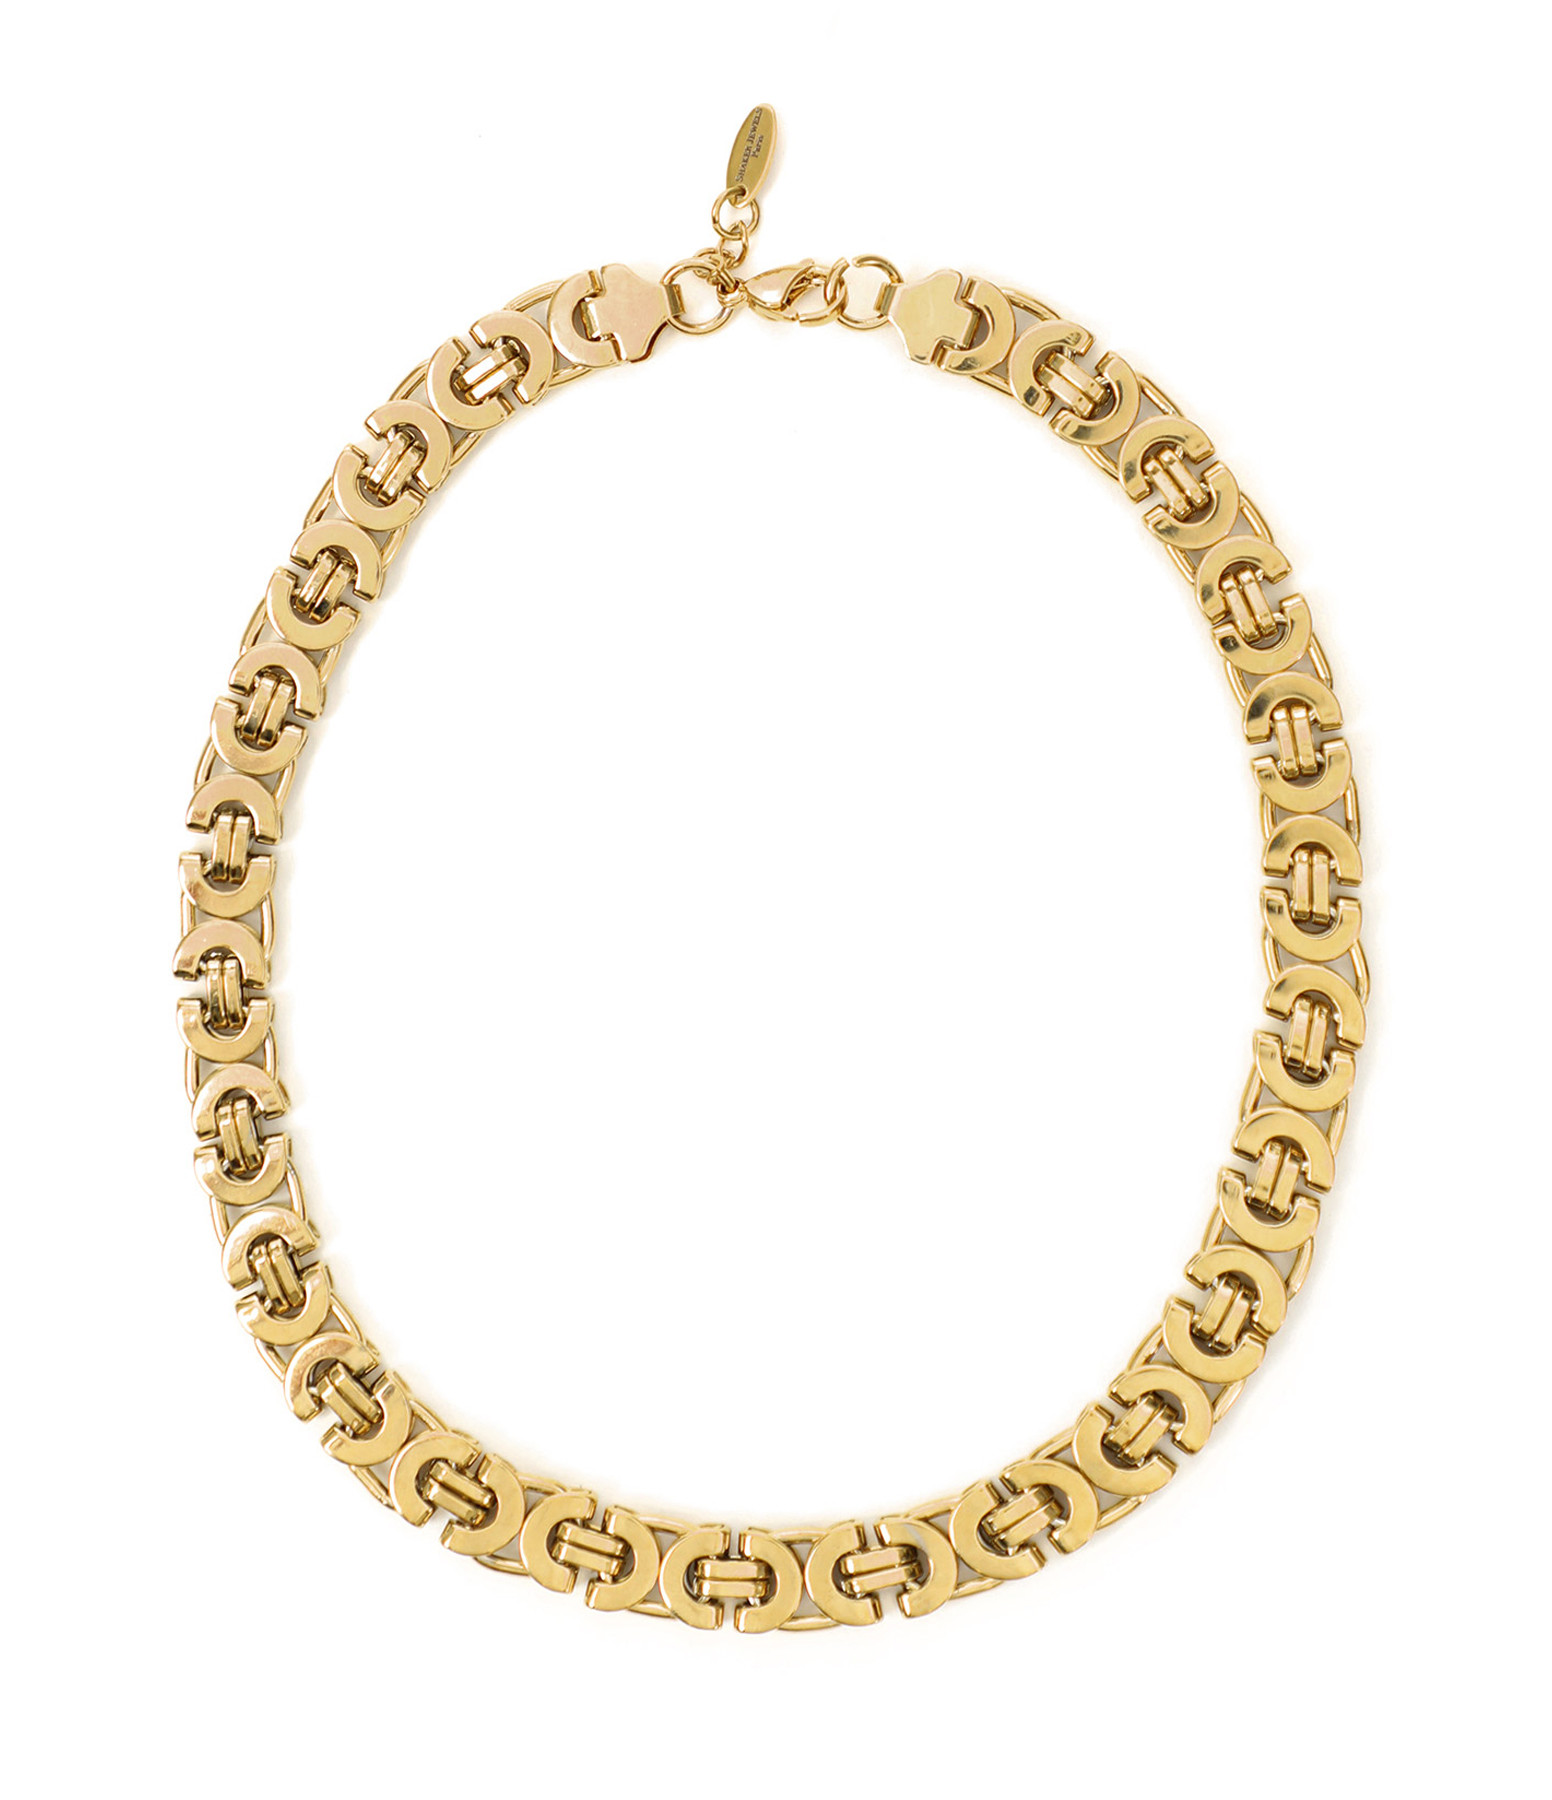 SHAKER JEWELS - Collier Orion Plaqué Or